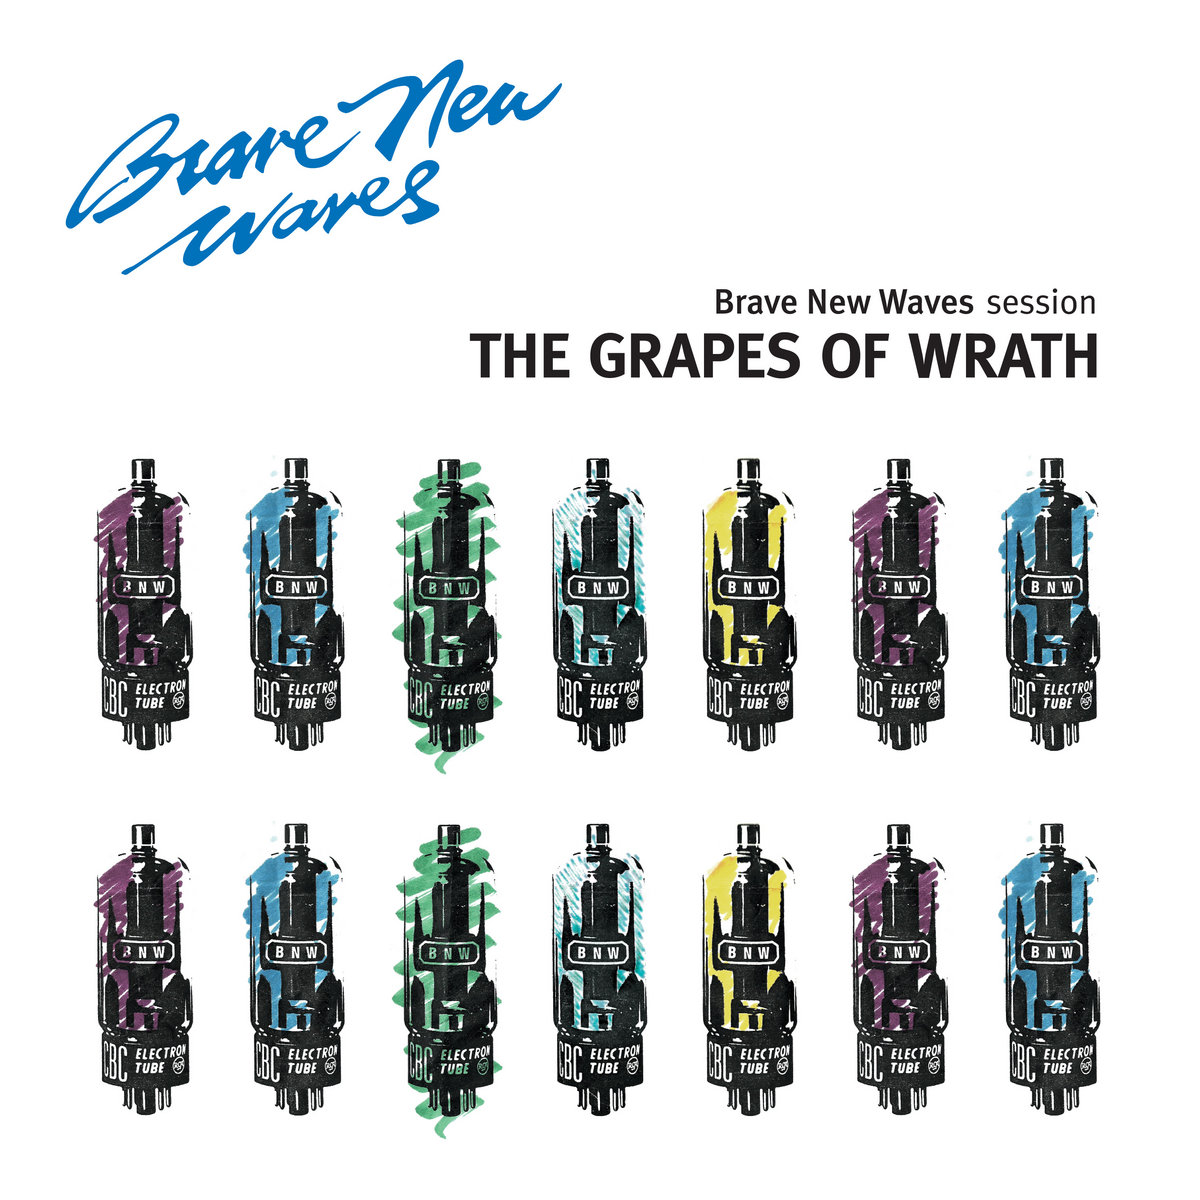 new essays on the grapes of wrath Free grapes of wrath papers, essays, and research papers.